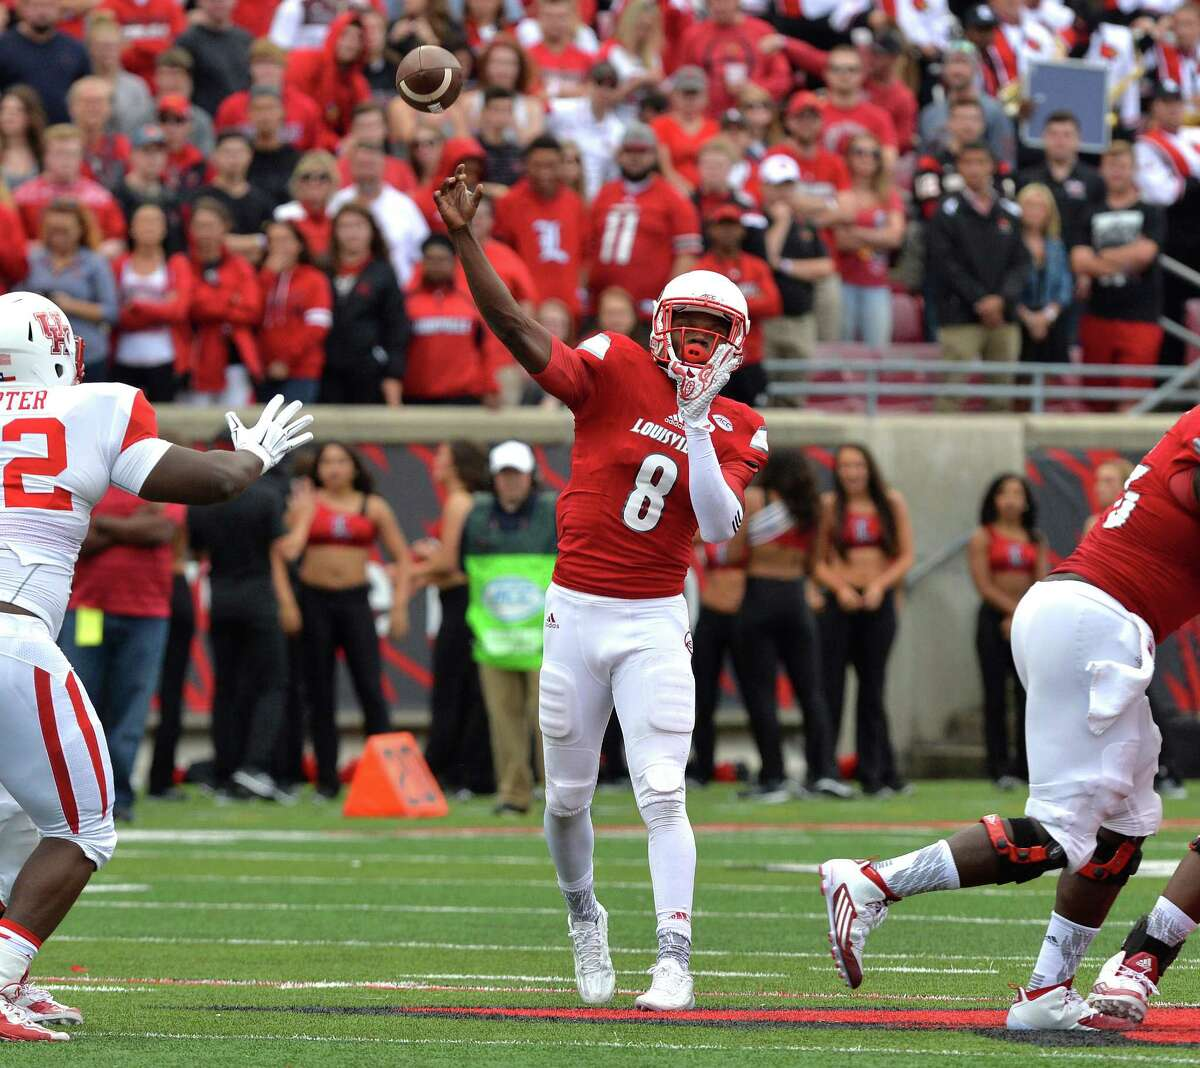 Louisville quarterback Lamar Jackson (8) attempts a pass during the second half of an NCAA college football game against Houston in Louisville, Ky. Saturday, Sept. 12, 2015. Houston defeated Louisville 34-31. (AP Photo/Timothy D. Easley)